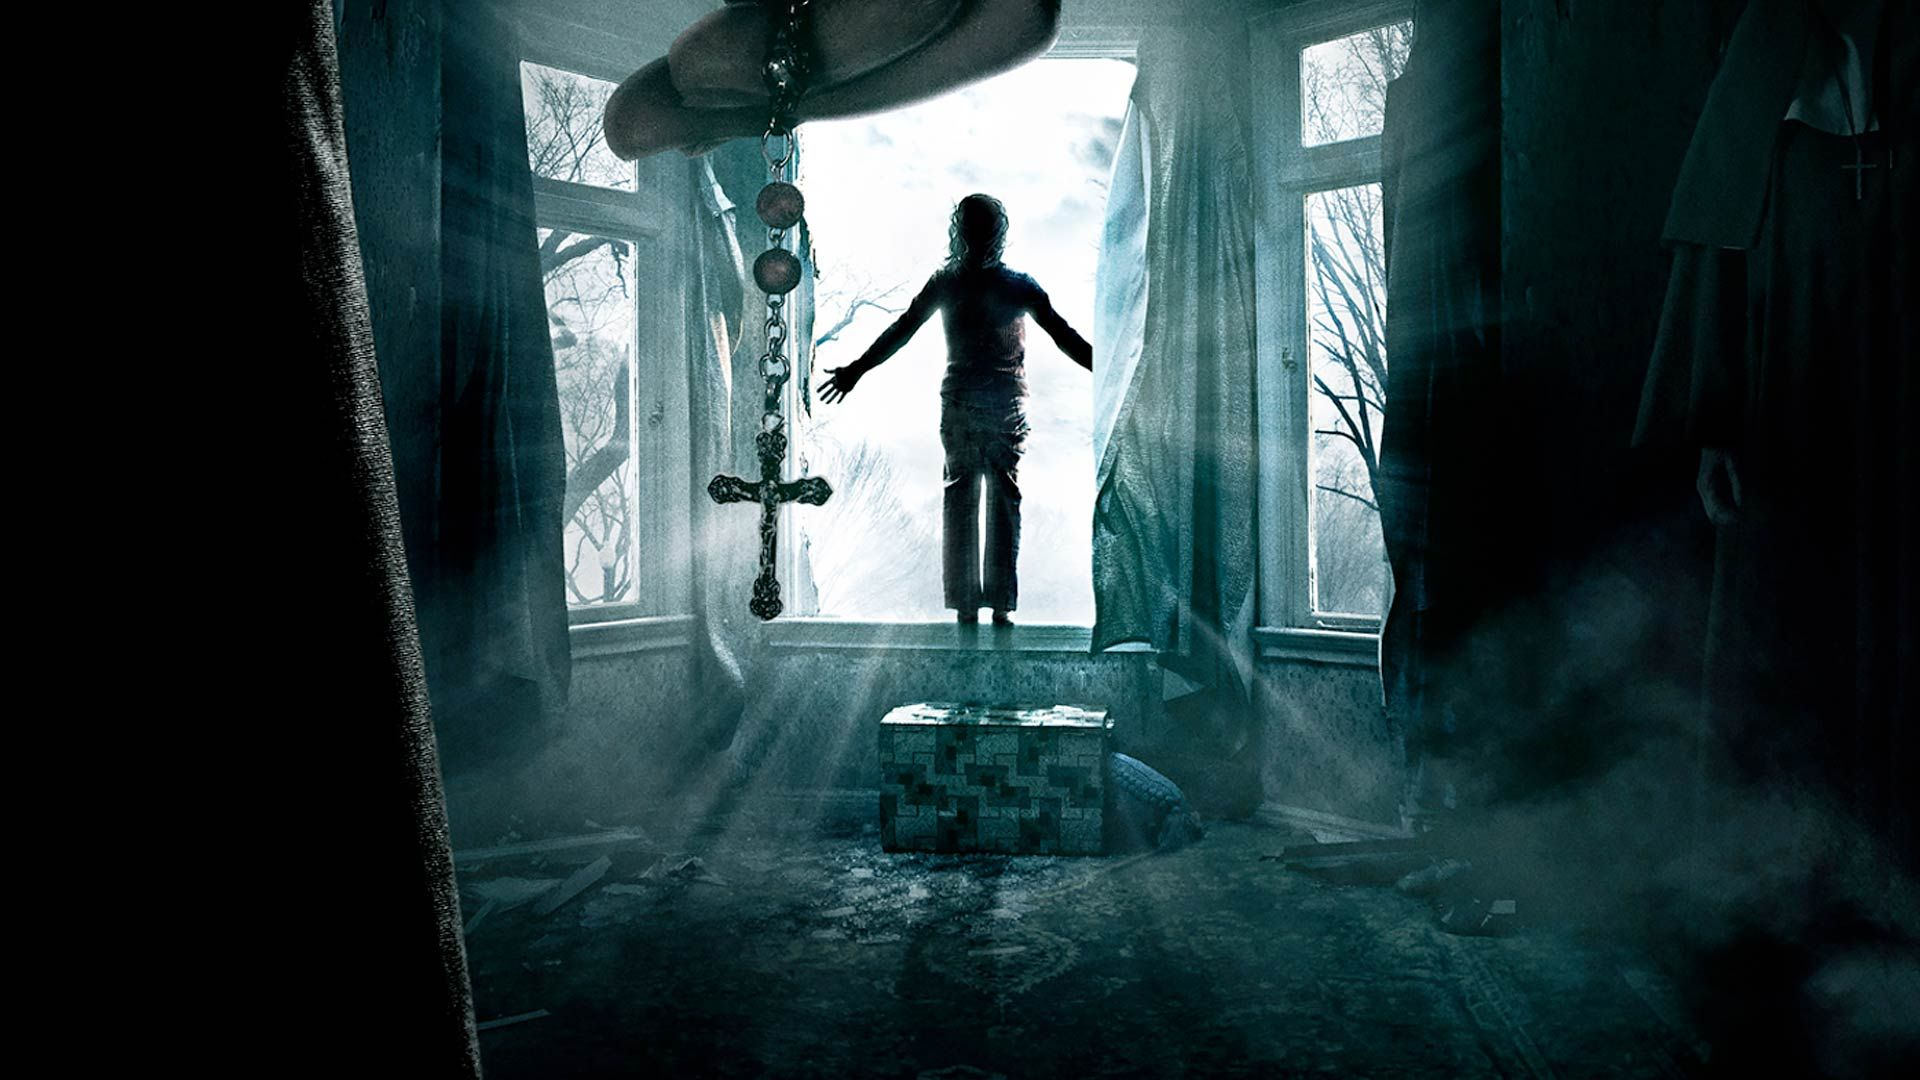 The Conjuring Horror Window Cross 109816 1920x1080 Jpg 1920 1080 The Conjuring Movie Wallpapers Horror Movies